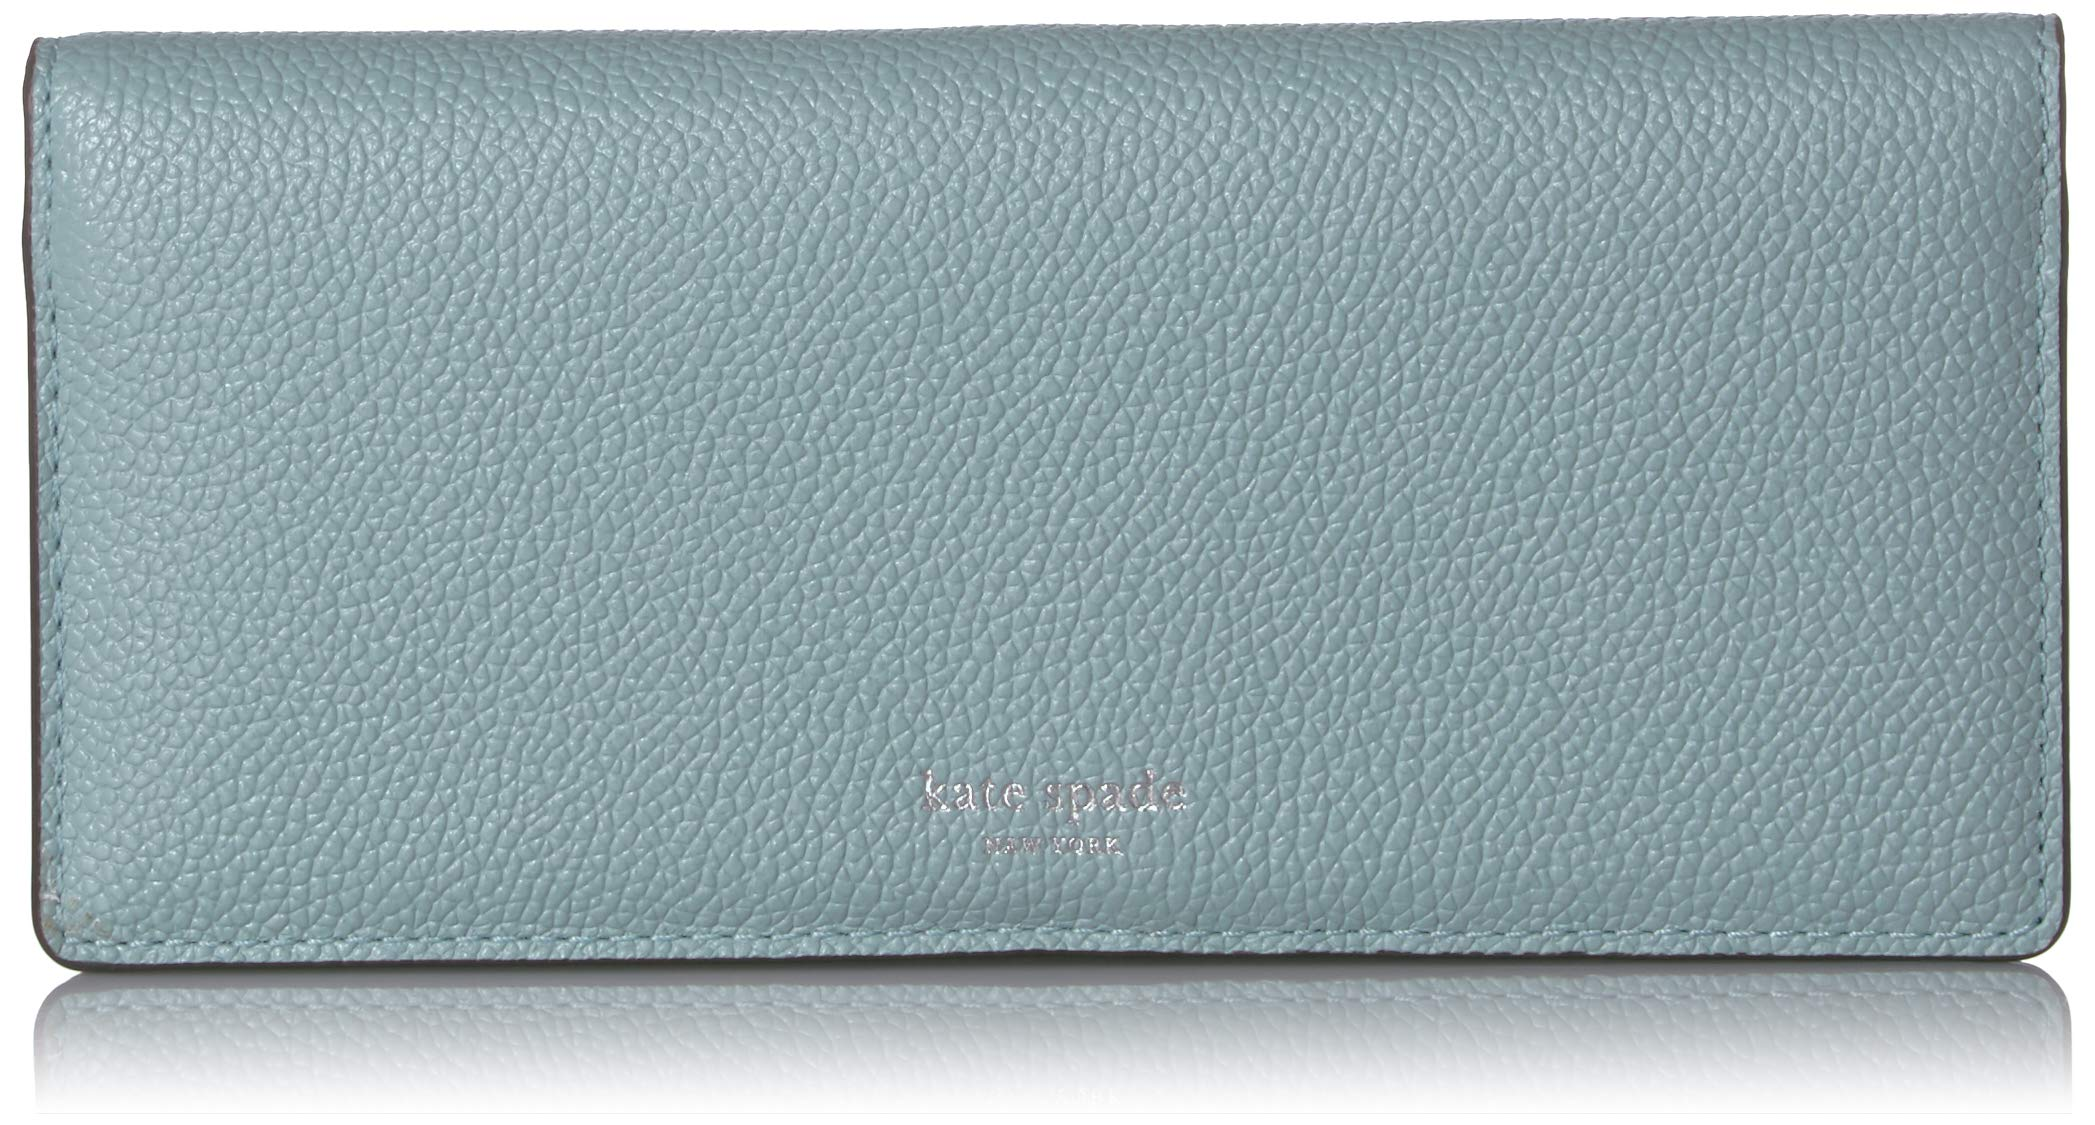 Kate Spade New York Women's Margaux Bifold Continental Wallet Hazy One Size